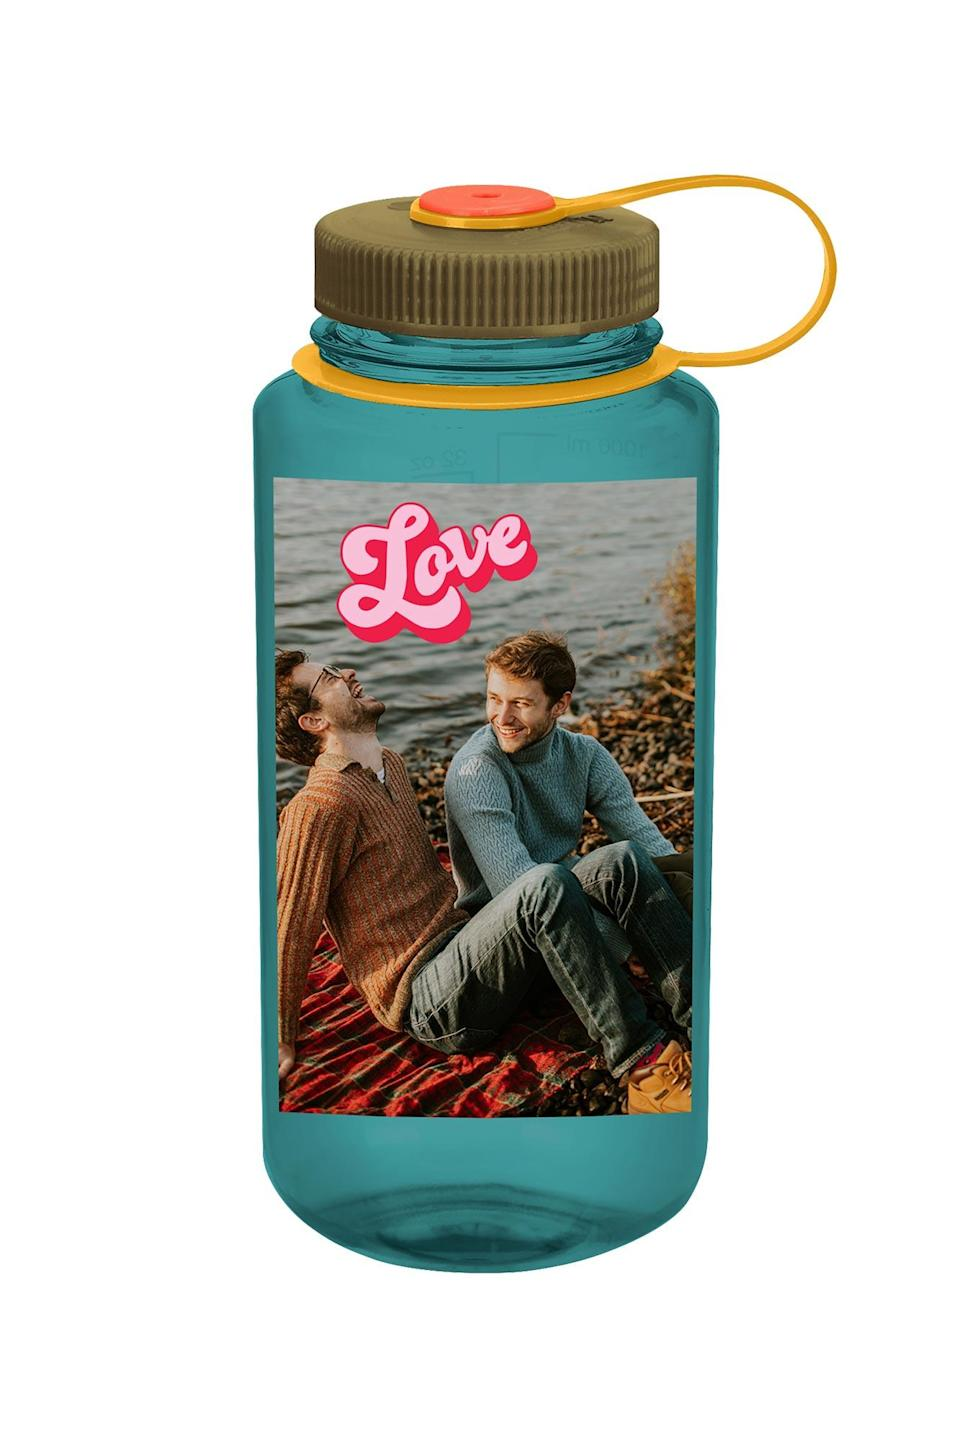 """<p>We're all trying to drink more water and use reusable containers these days, and now Nalgene is letting you do just that <em>and</em> wear your heart on your sleeve, er, <a href=""""https://custom.nalgene.com/"""" rel=""""nofollow noopener"""" target=""""_blank"""" data-ylk=""""slk:Nalgene bottle."""" class=""""link rapid-noclick-resp"""">Nalgene bottle.</a> This gift is perfect for everyone, but we particularly love it for the kids in your life — send them to school with a fully customizable water bottle!</p> <p><strong>$20, <a href=""""https://custom.nalgene.com/"""" rel=""""nofollow noopener"""" target=""""_blank"""" data-ylk=""""slk:custome.nalgene.com"""" class=""""link rapid-noclick-resp"""">custome.nalgene.com</a></strong></p> <p><strong>*Use discount code HEY2021 to get 20% off two or more bottles (expires 1/31/21)</strong></p>"""